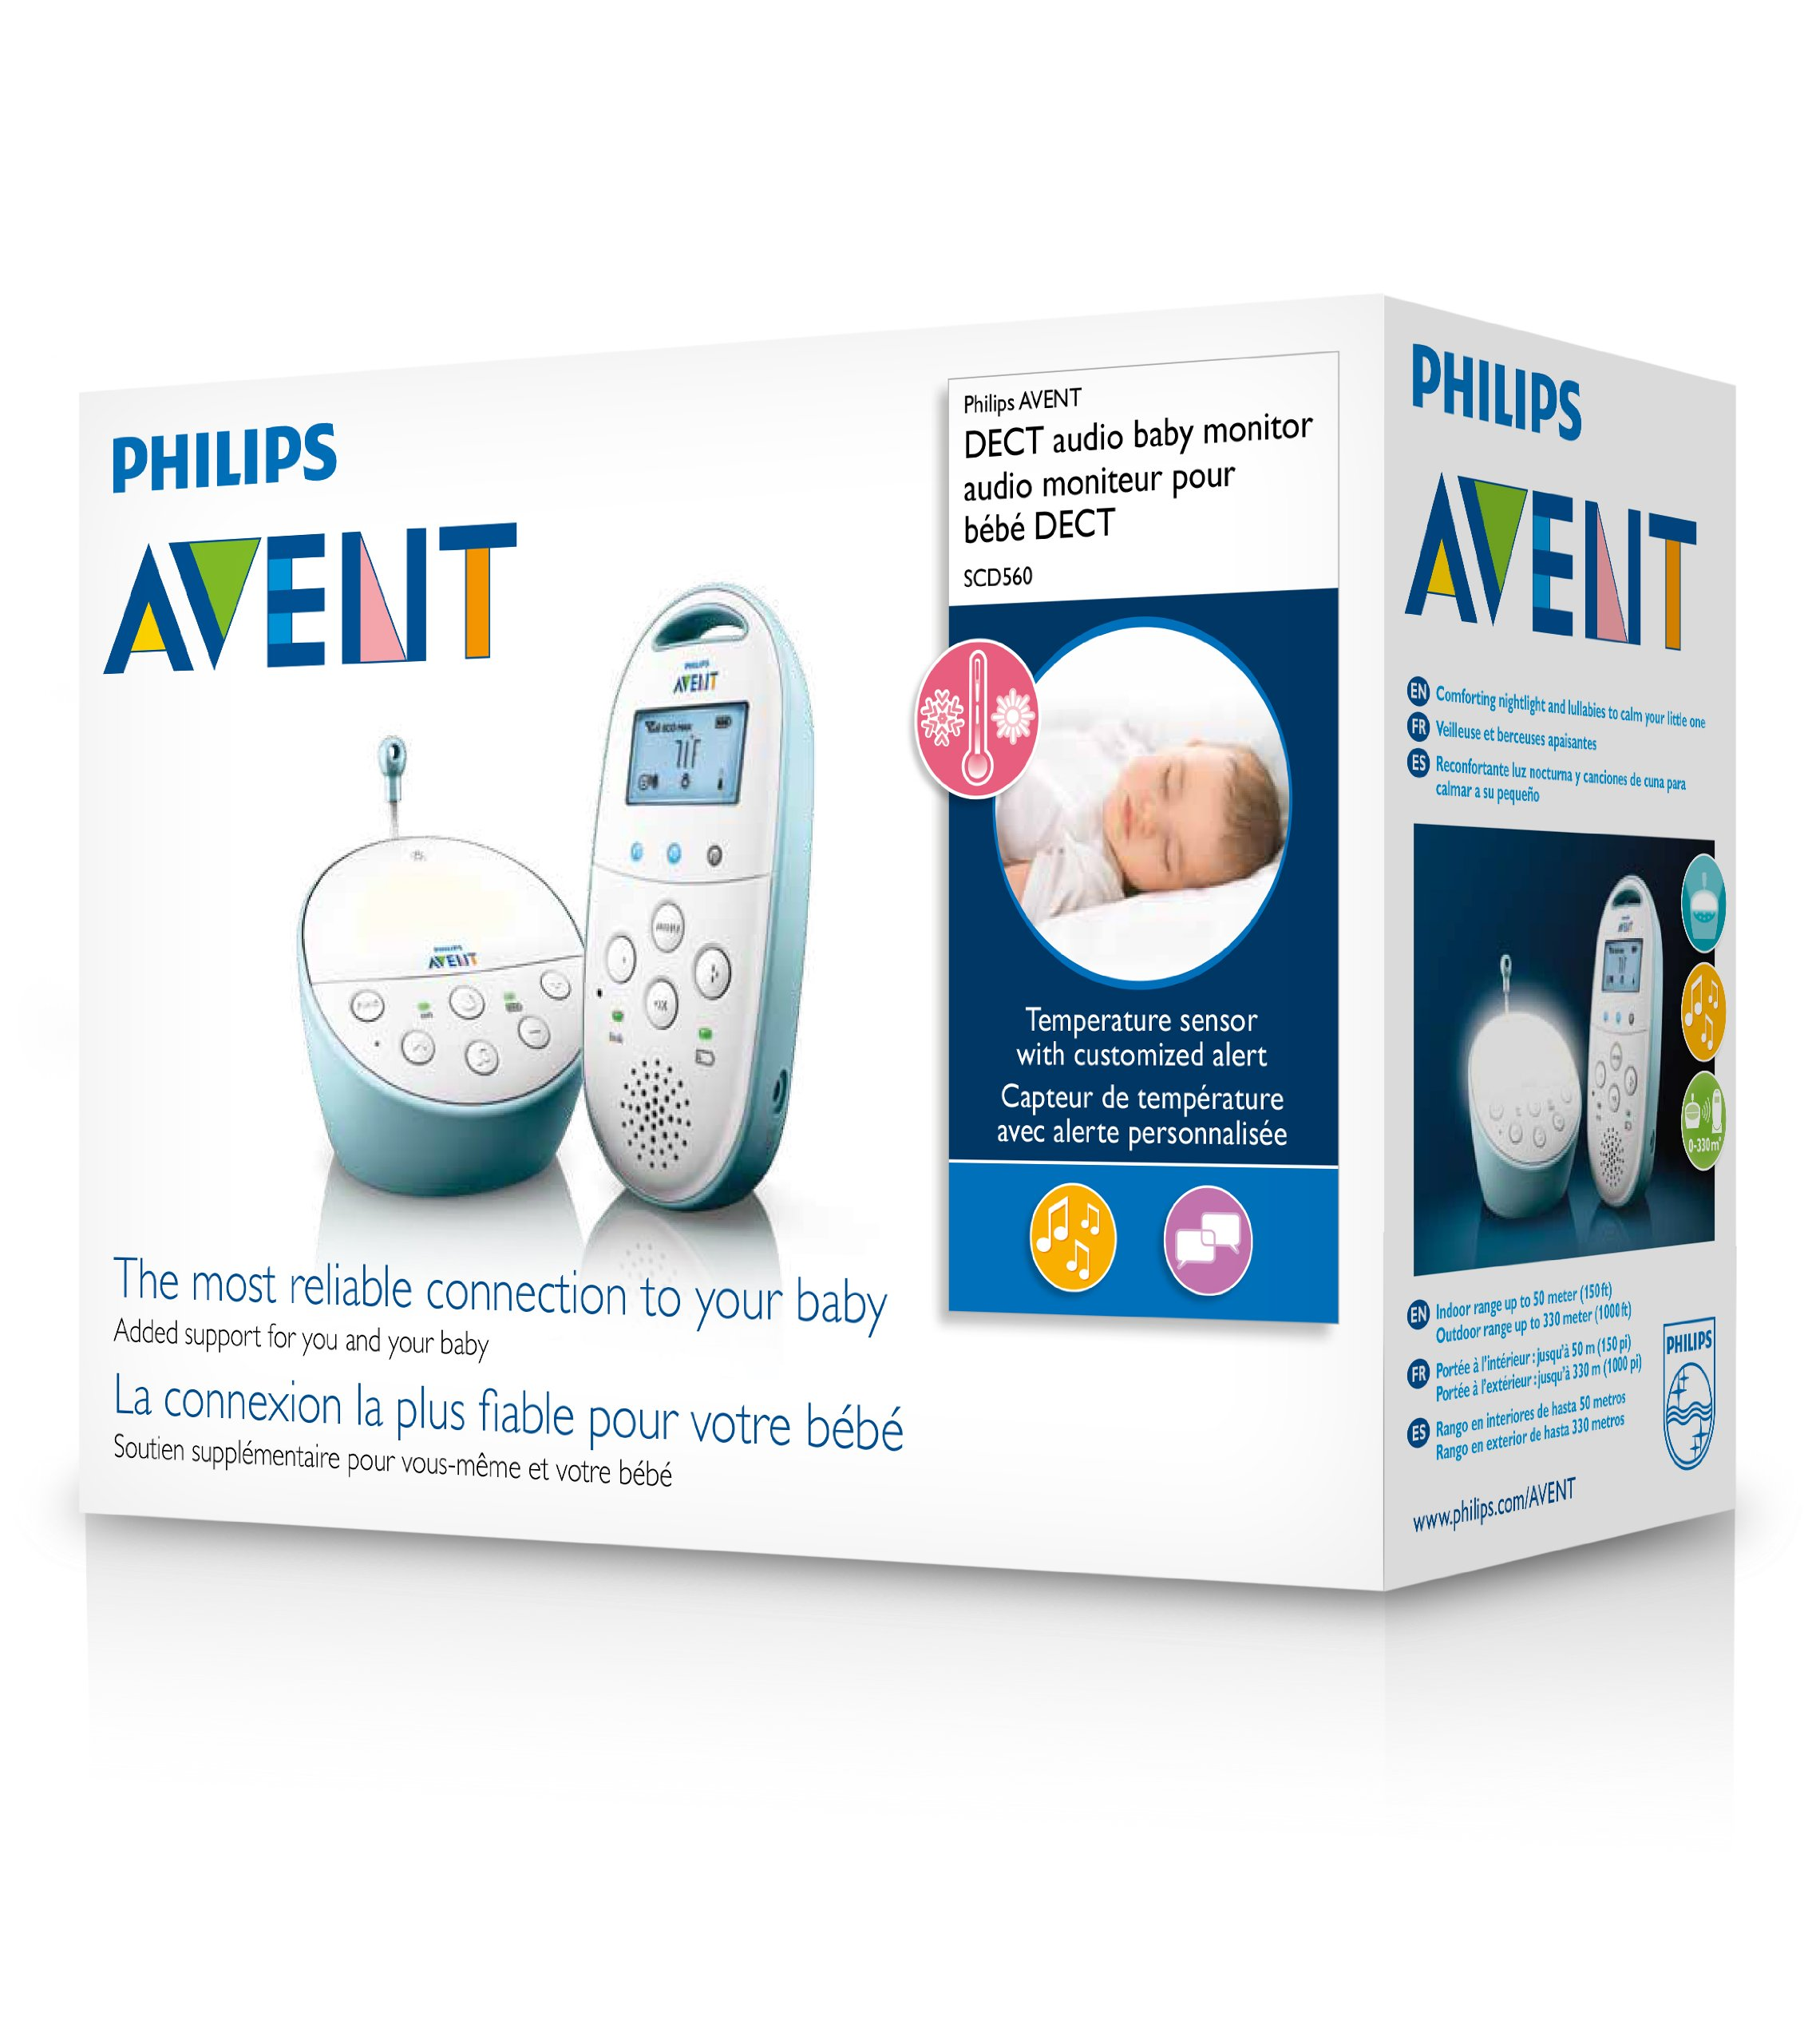 Philips Avent DECT Baby Monitor with Temperature Sensor by Philips AVENT (Image #3)